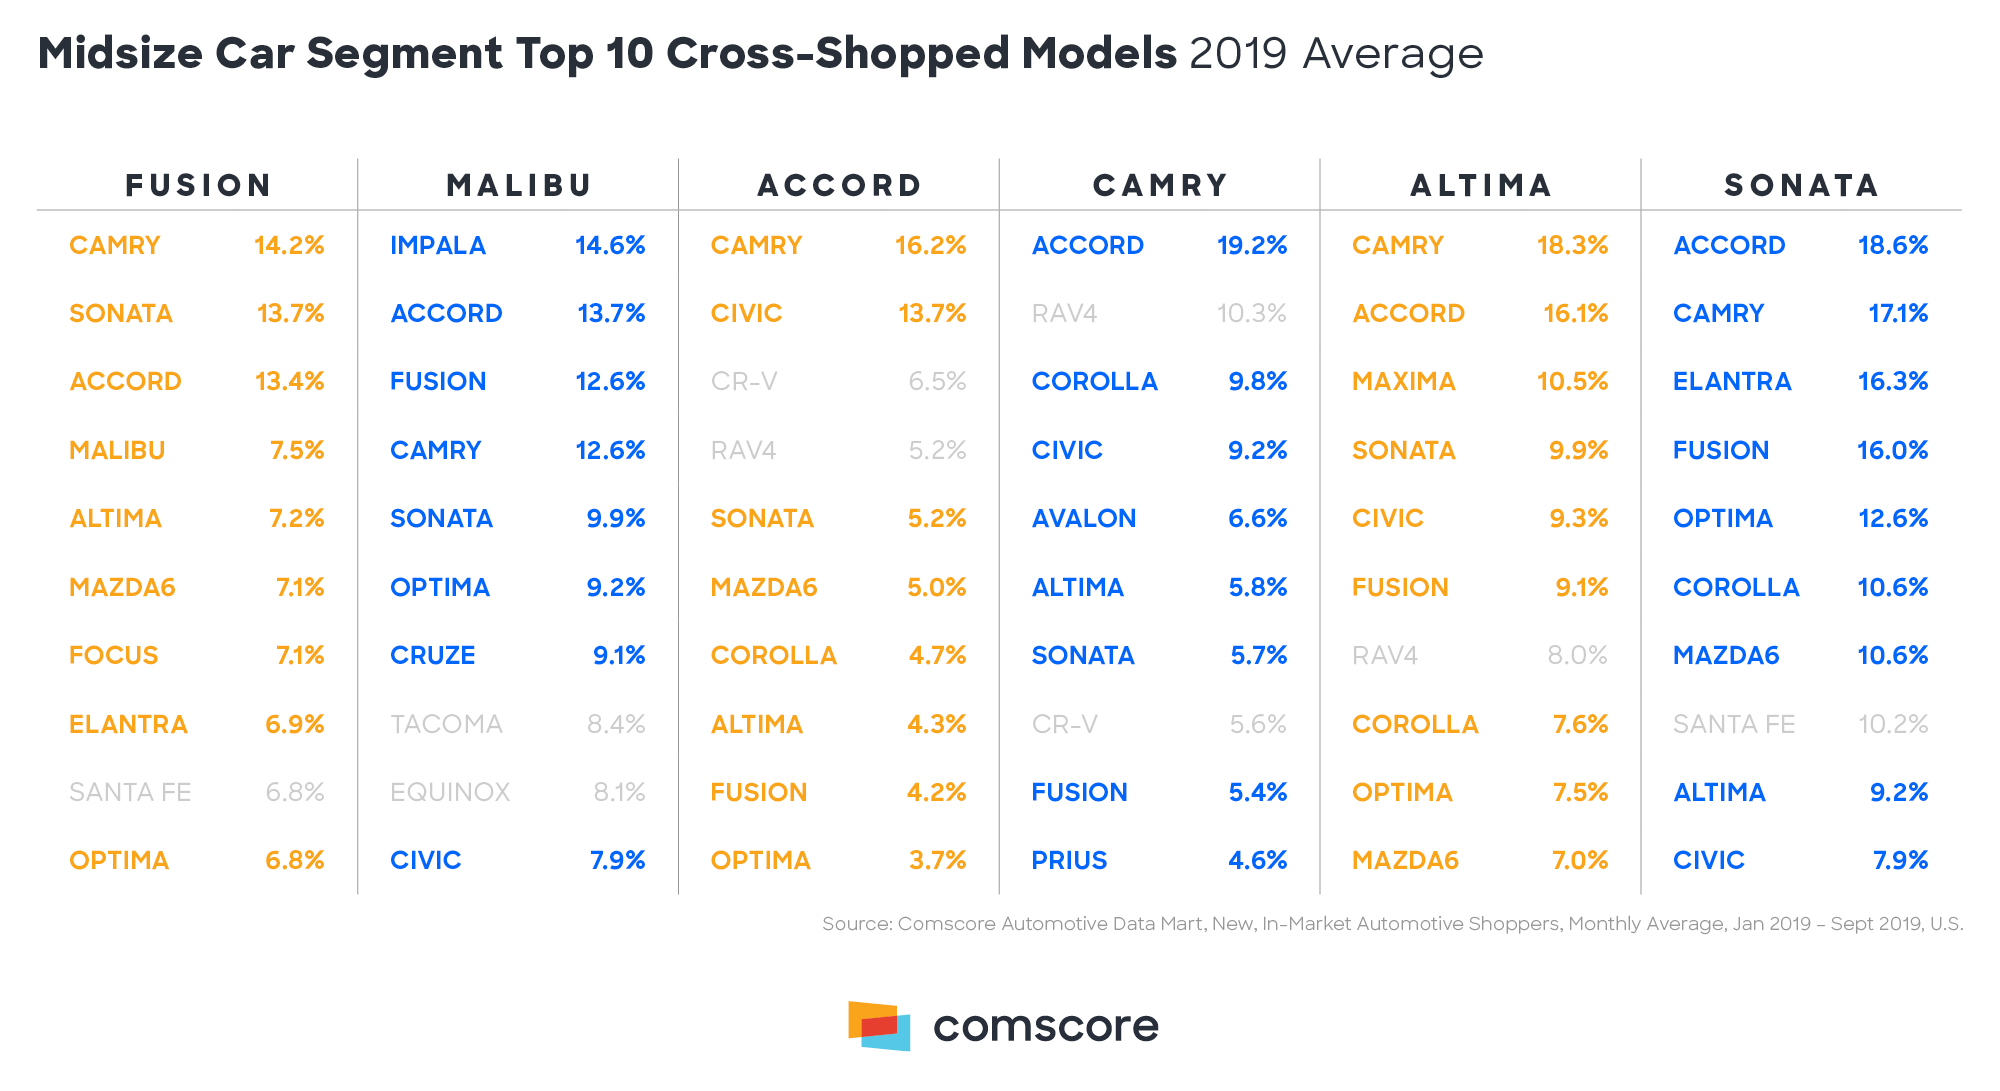 Midsize Car Segment Top 10 Cross Shopped Models